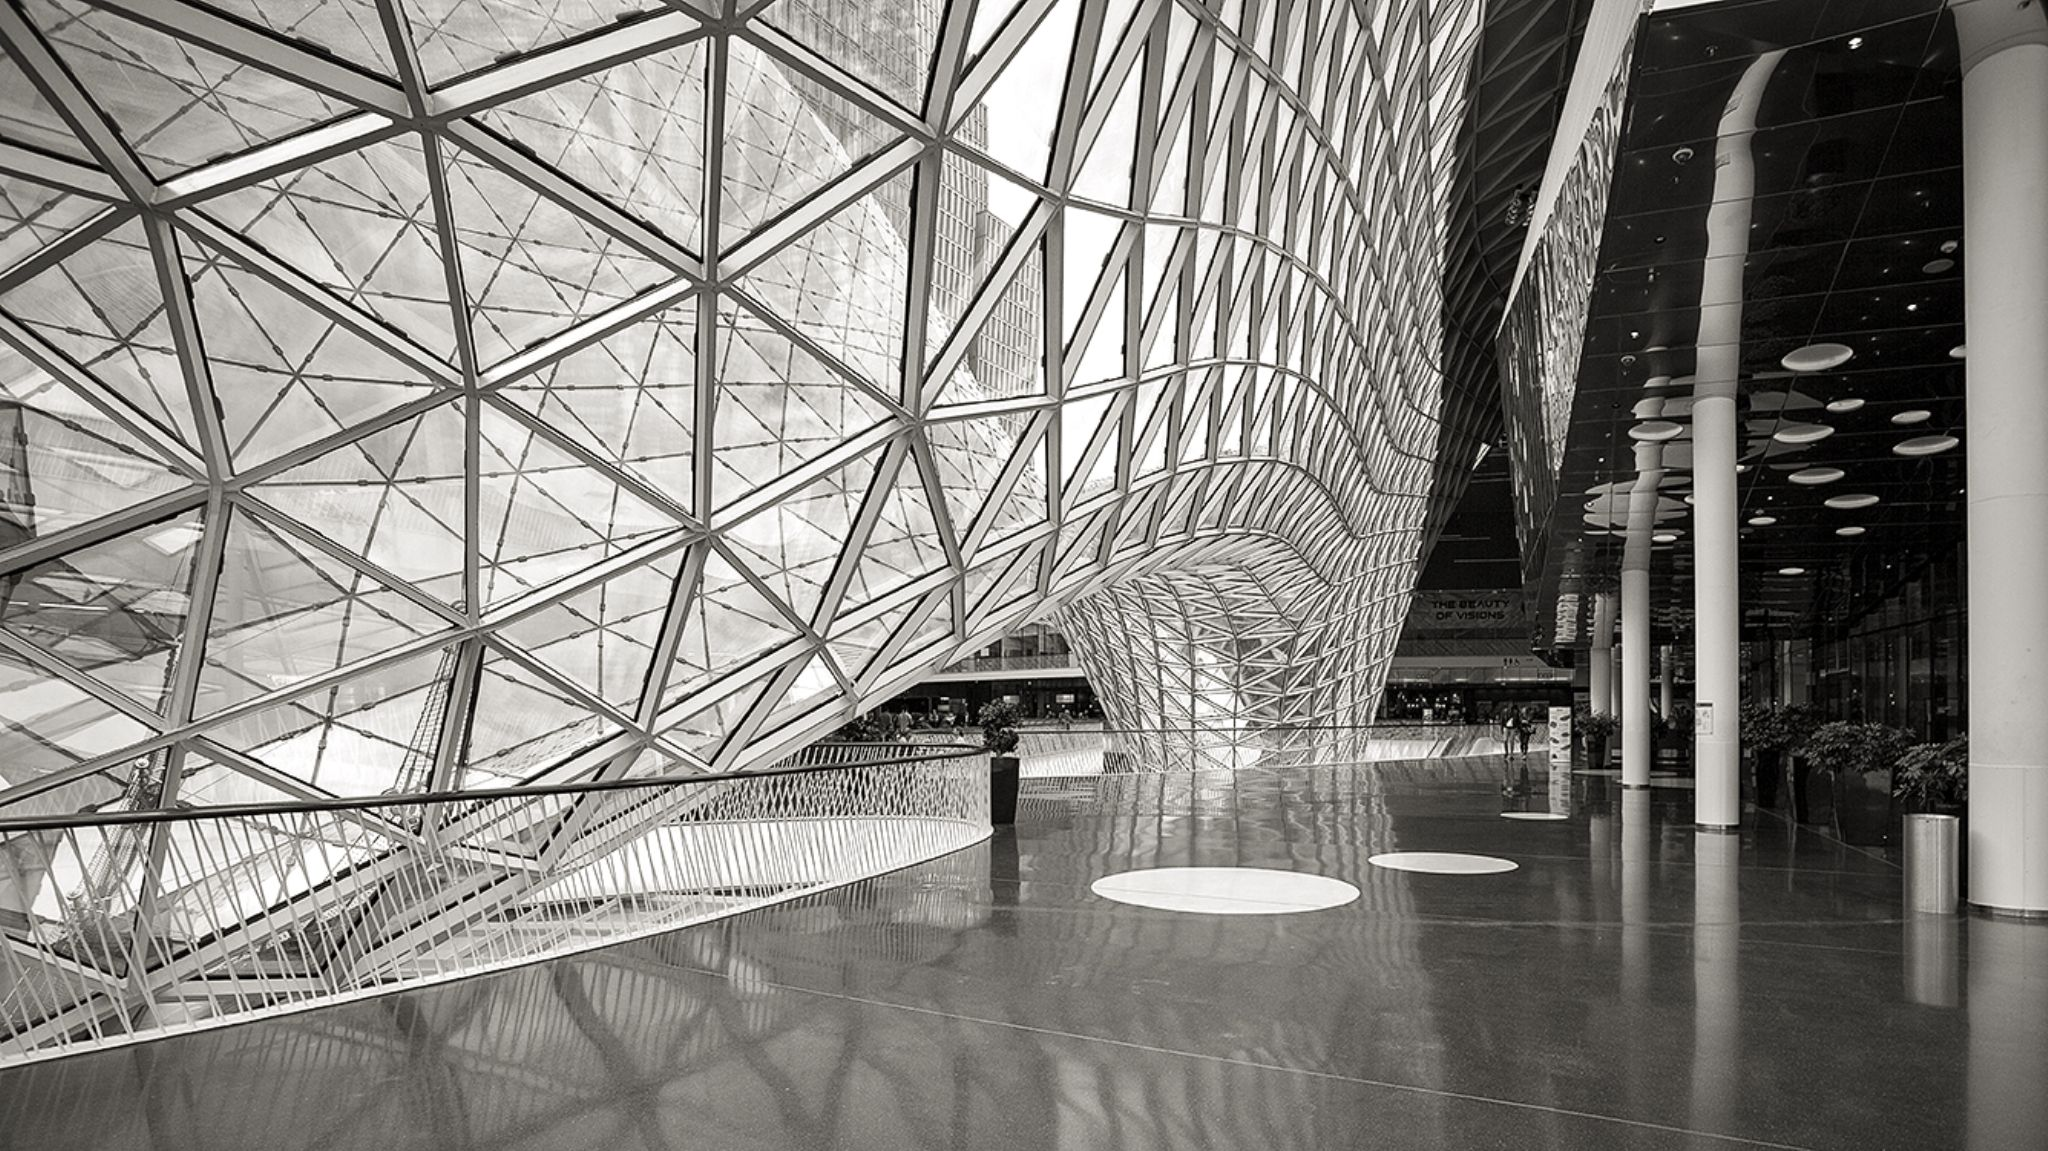 awesome architecture by BerndKinghorst